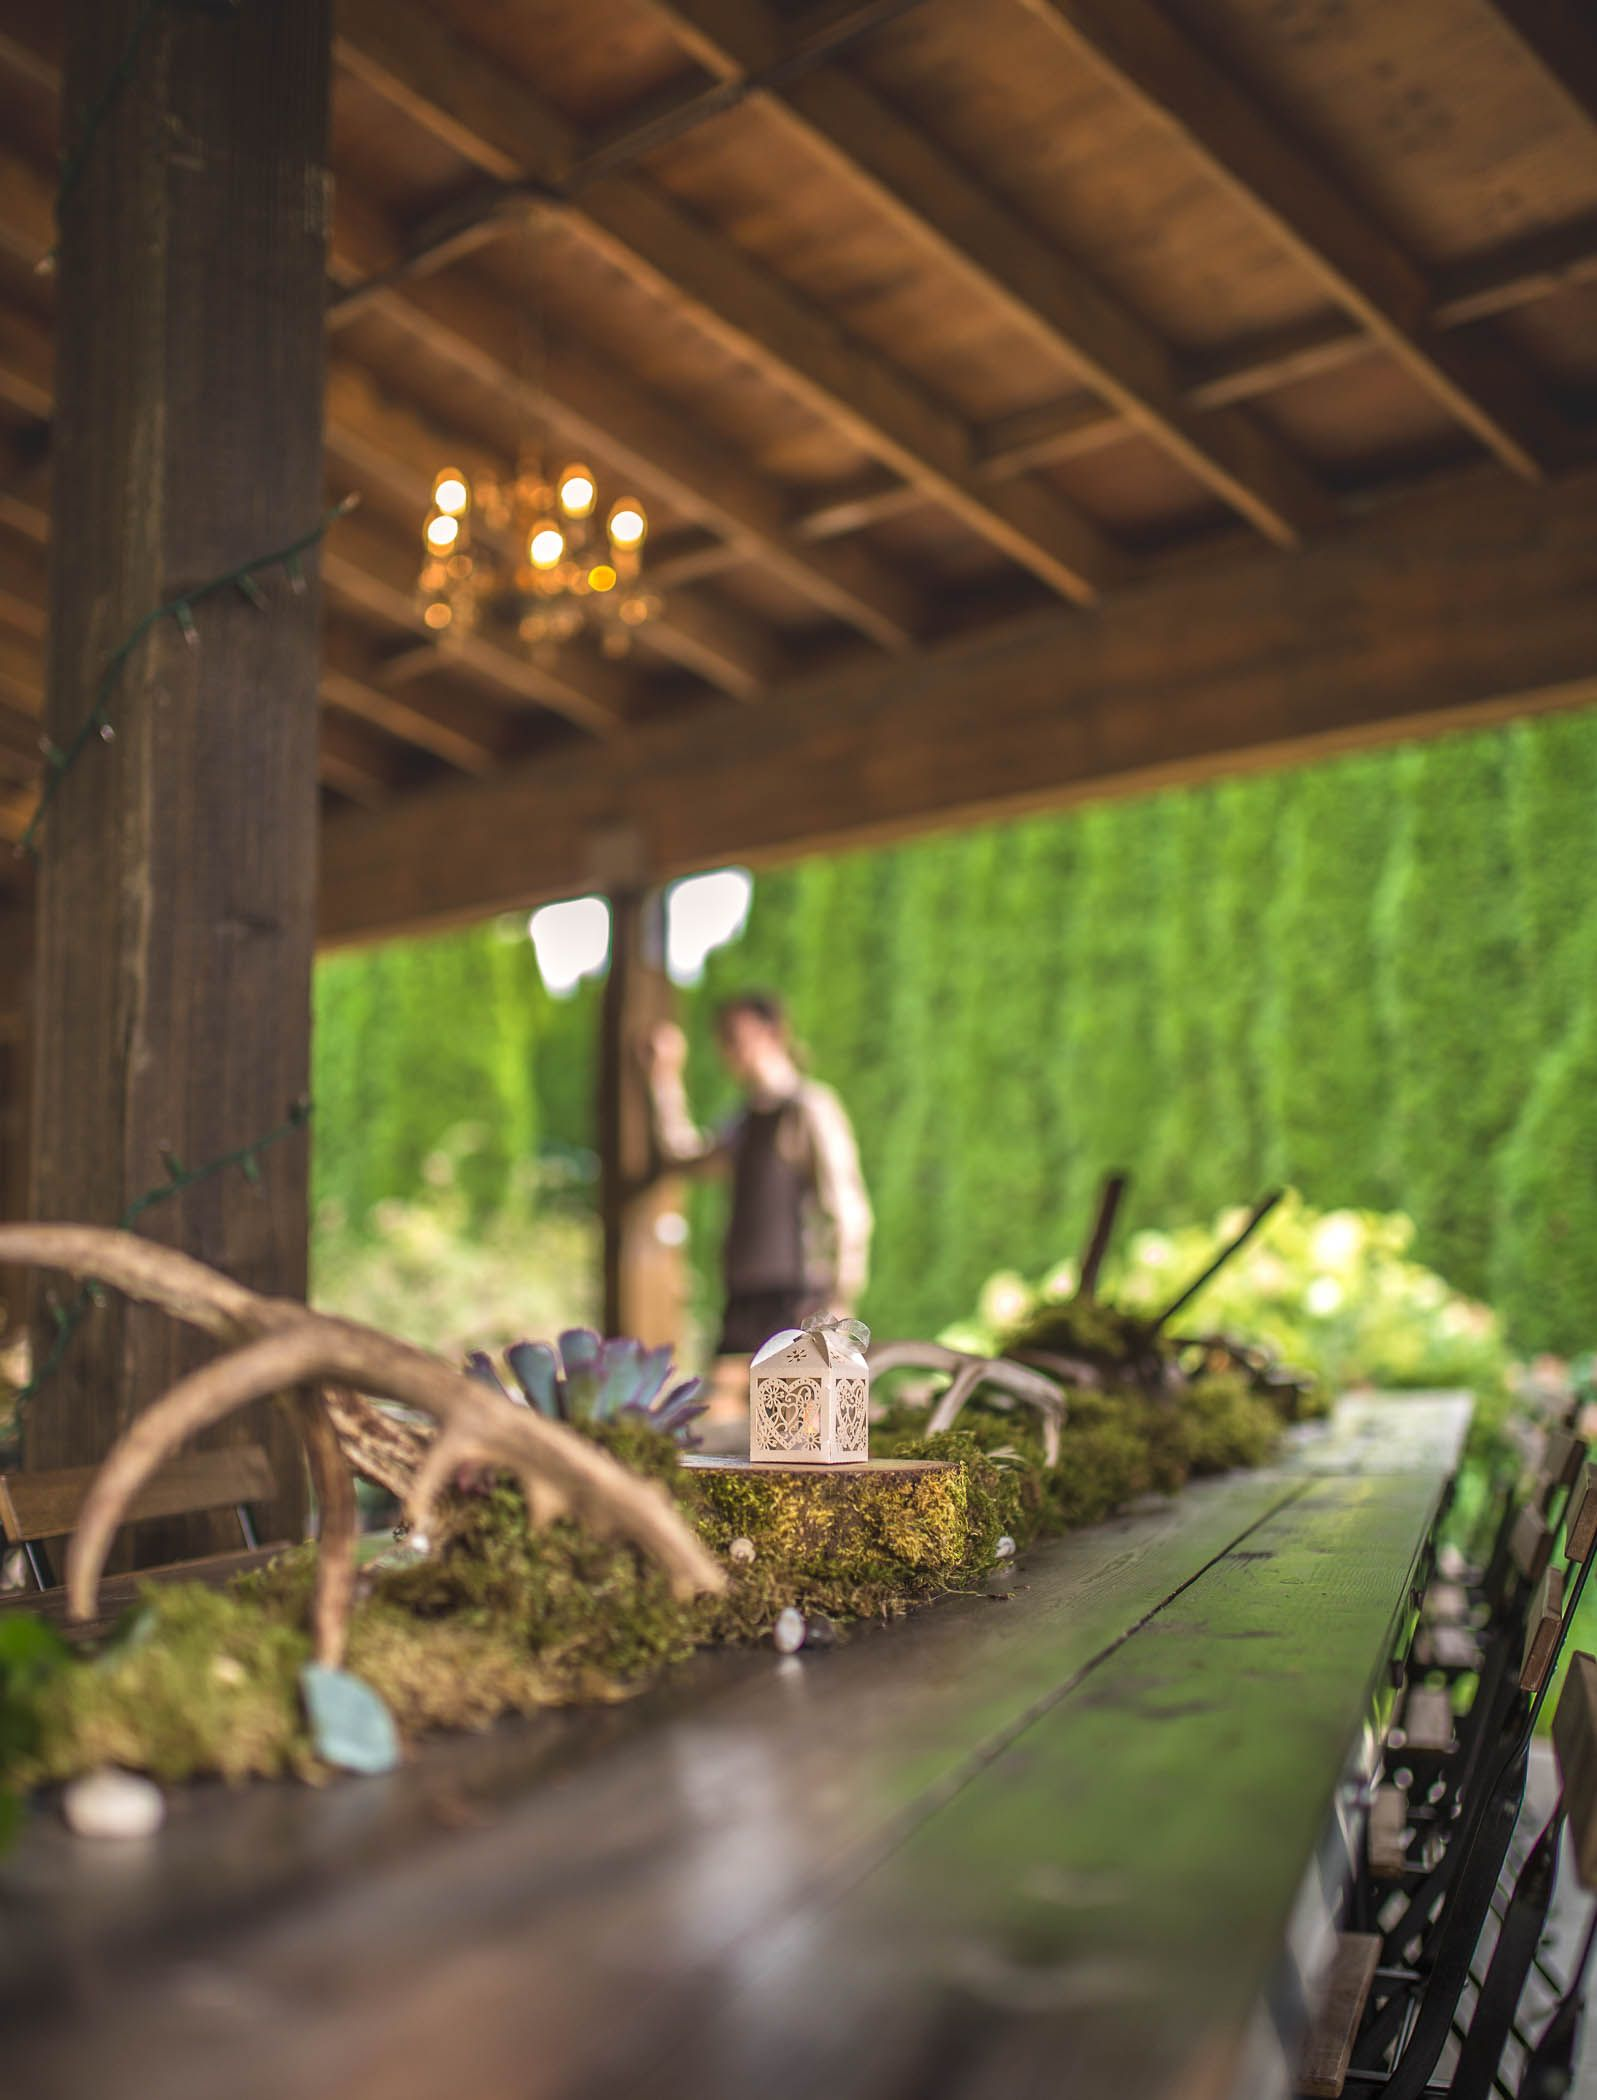 Deer themed wedding table decoration in kent wa antlers moss deer themed wedding table decoration in kent wa antlers moss pinecones junglespirit Image collections